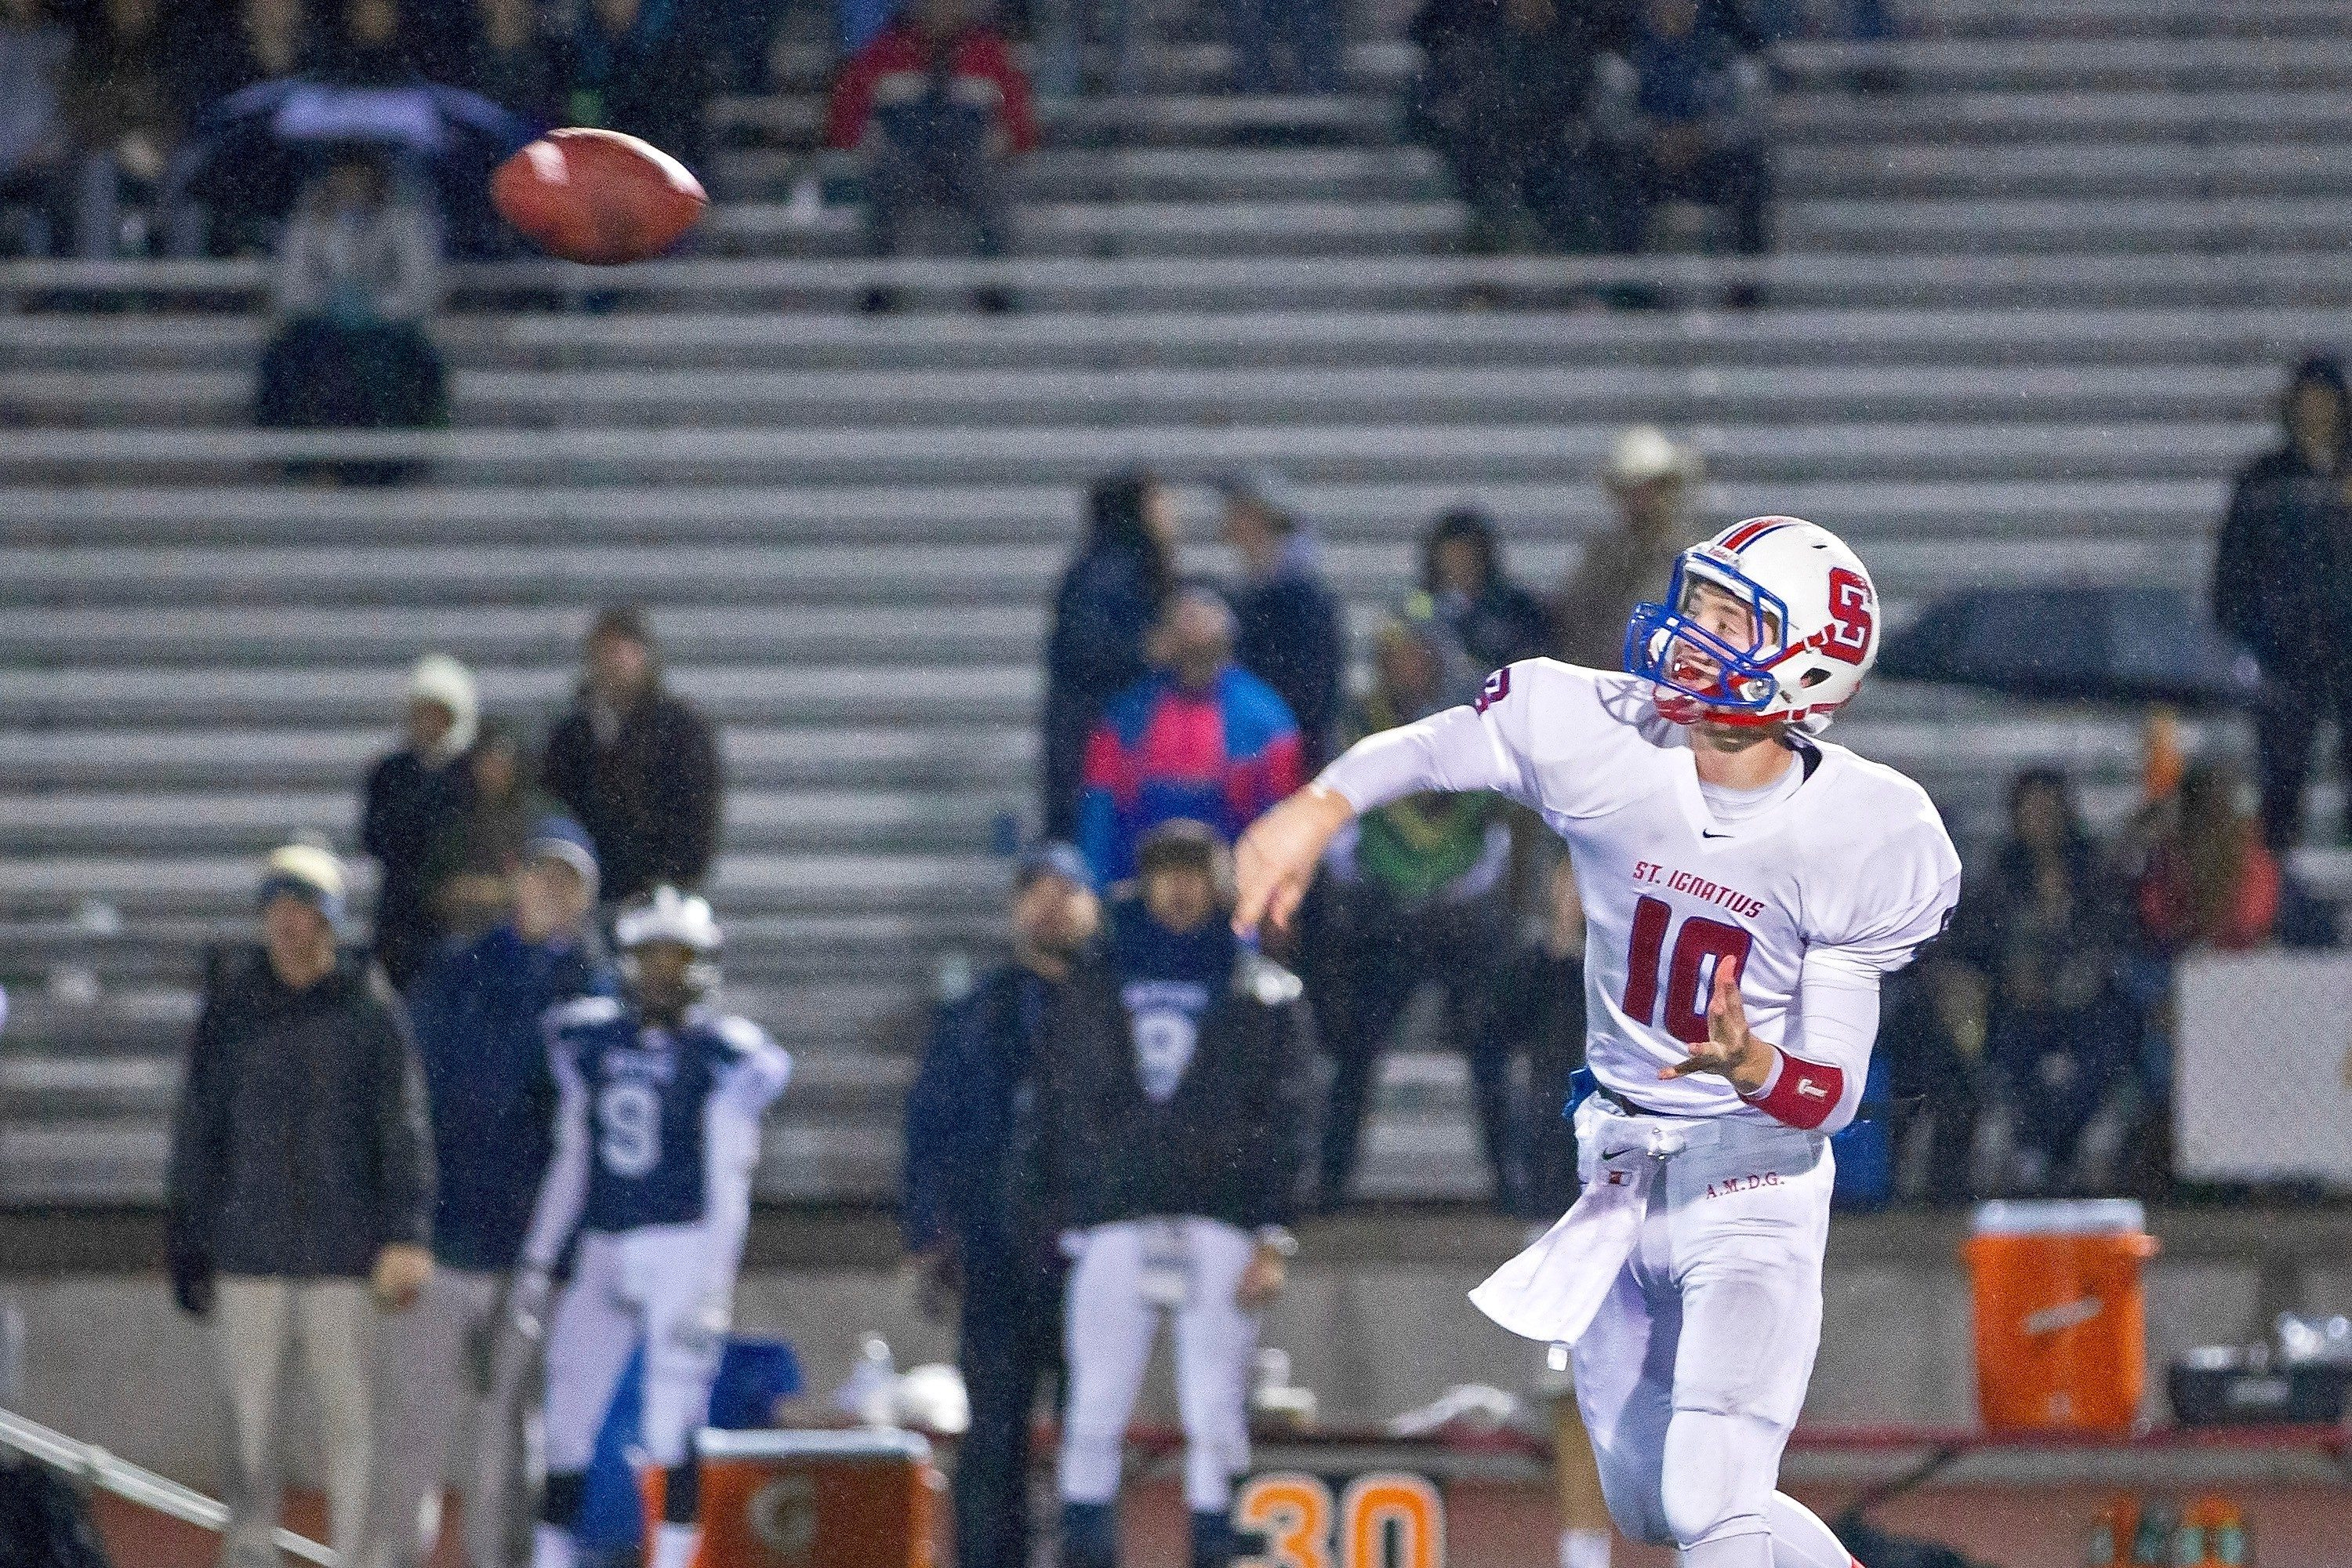 Joe Lang dives in for a touchdown late in the fourth quarter Friday.